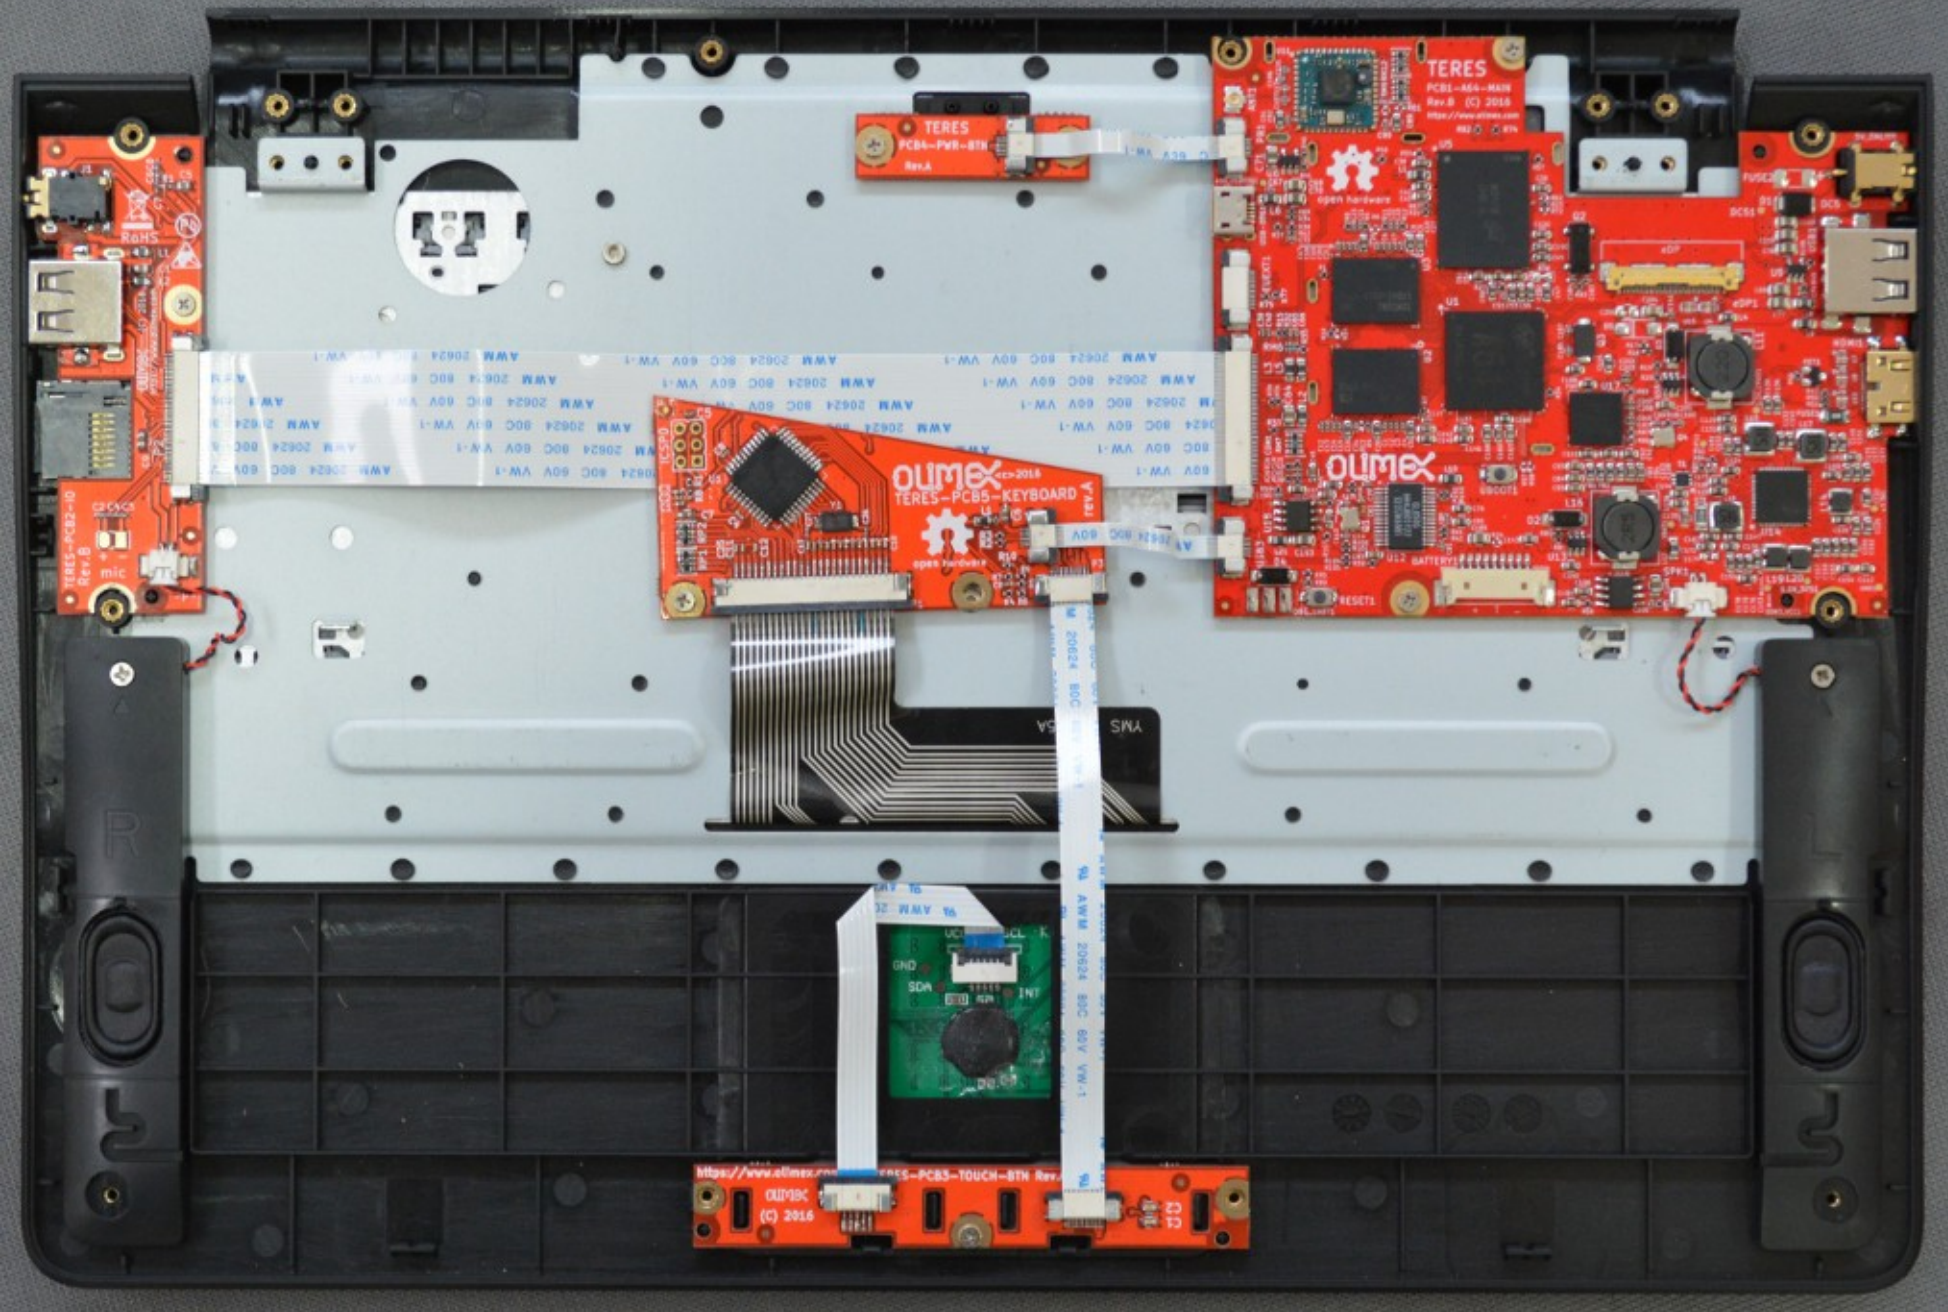 You can build a laptop out of open source components if you want a but unfortunately almost everything about this laptop is unsatisfying right now it runs a quad core arm64 chip though x86 and mips chips might be solutioingenieria Image collections